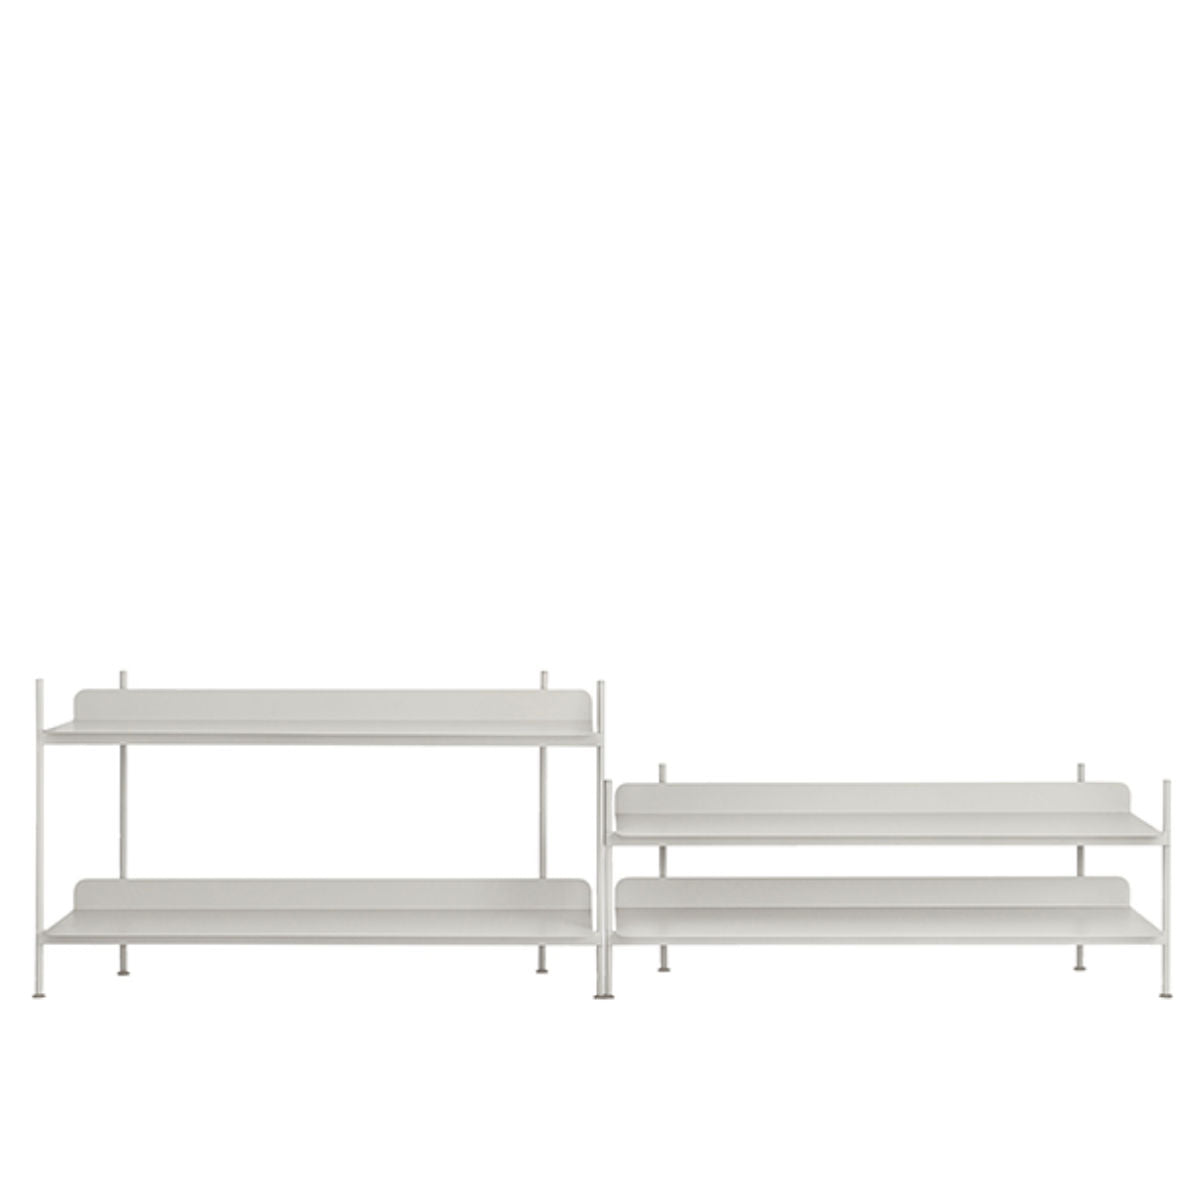 Muuto Compile Shelving System configuration 5